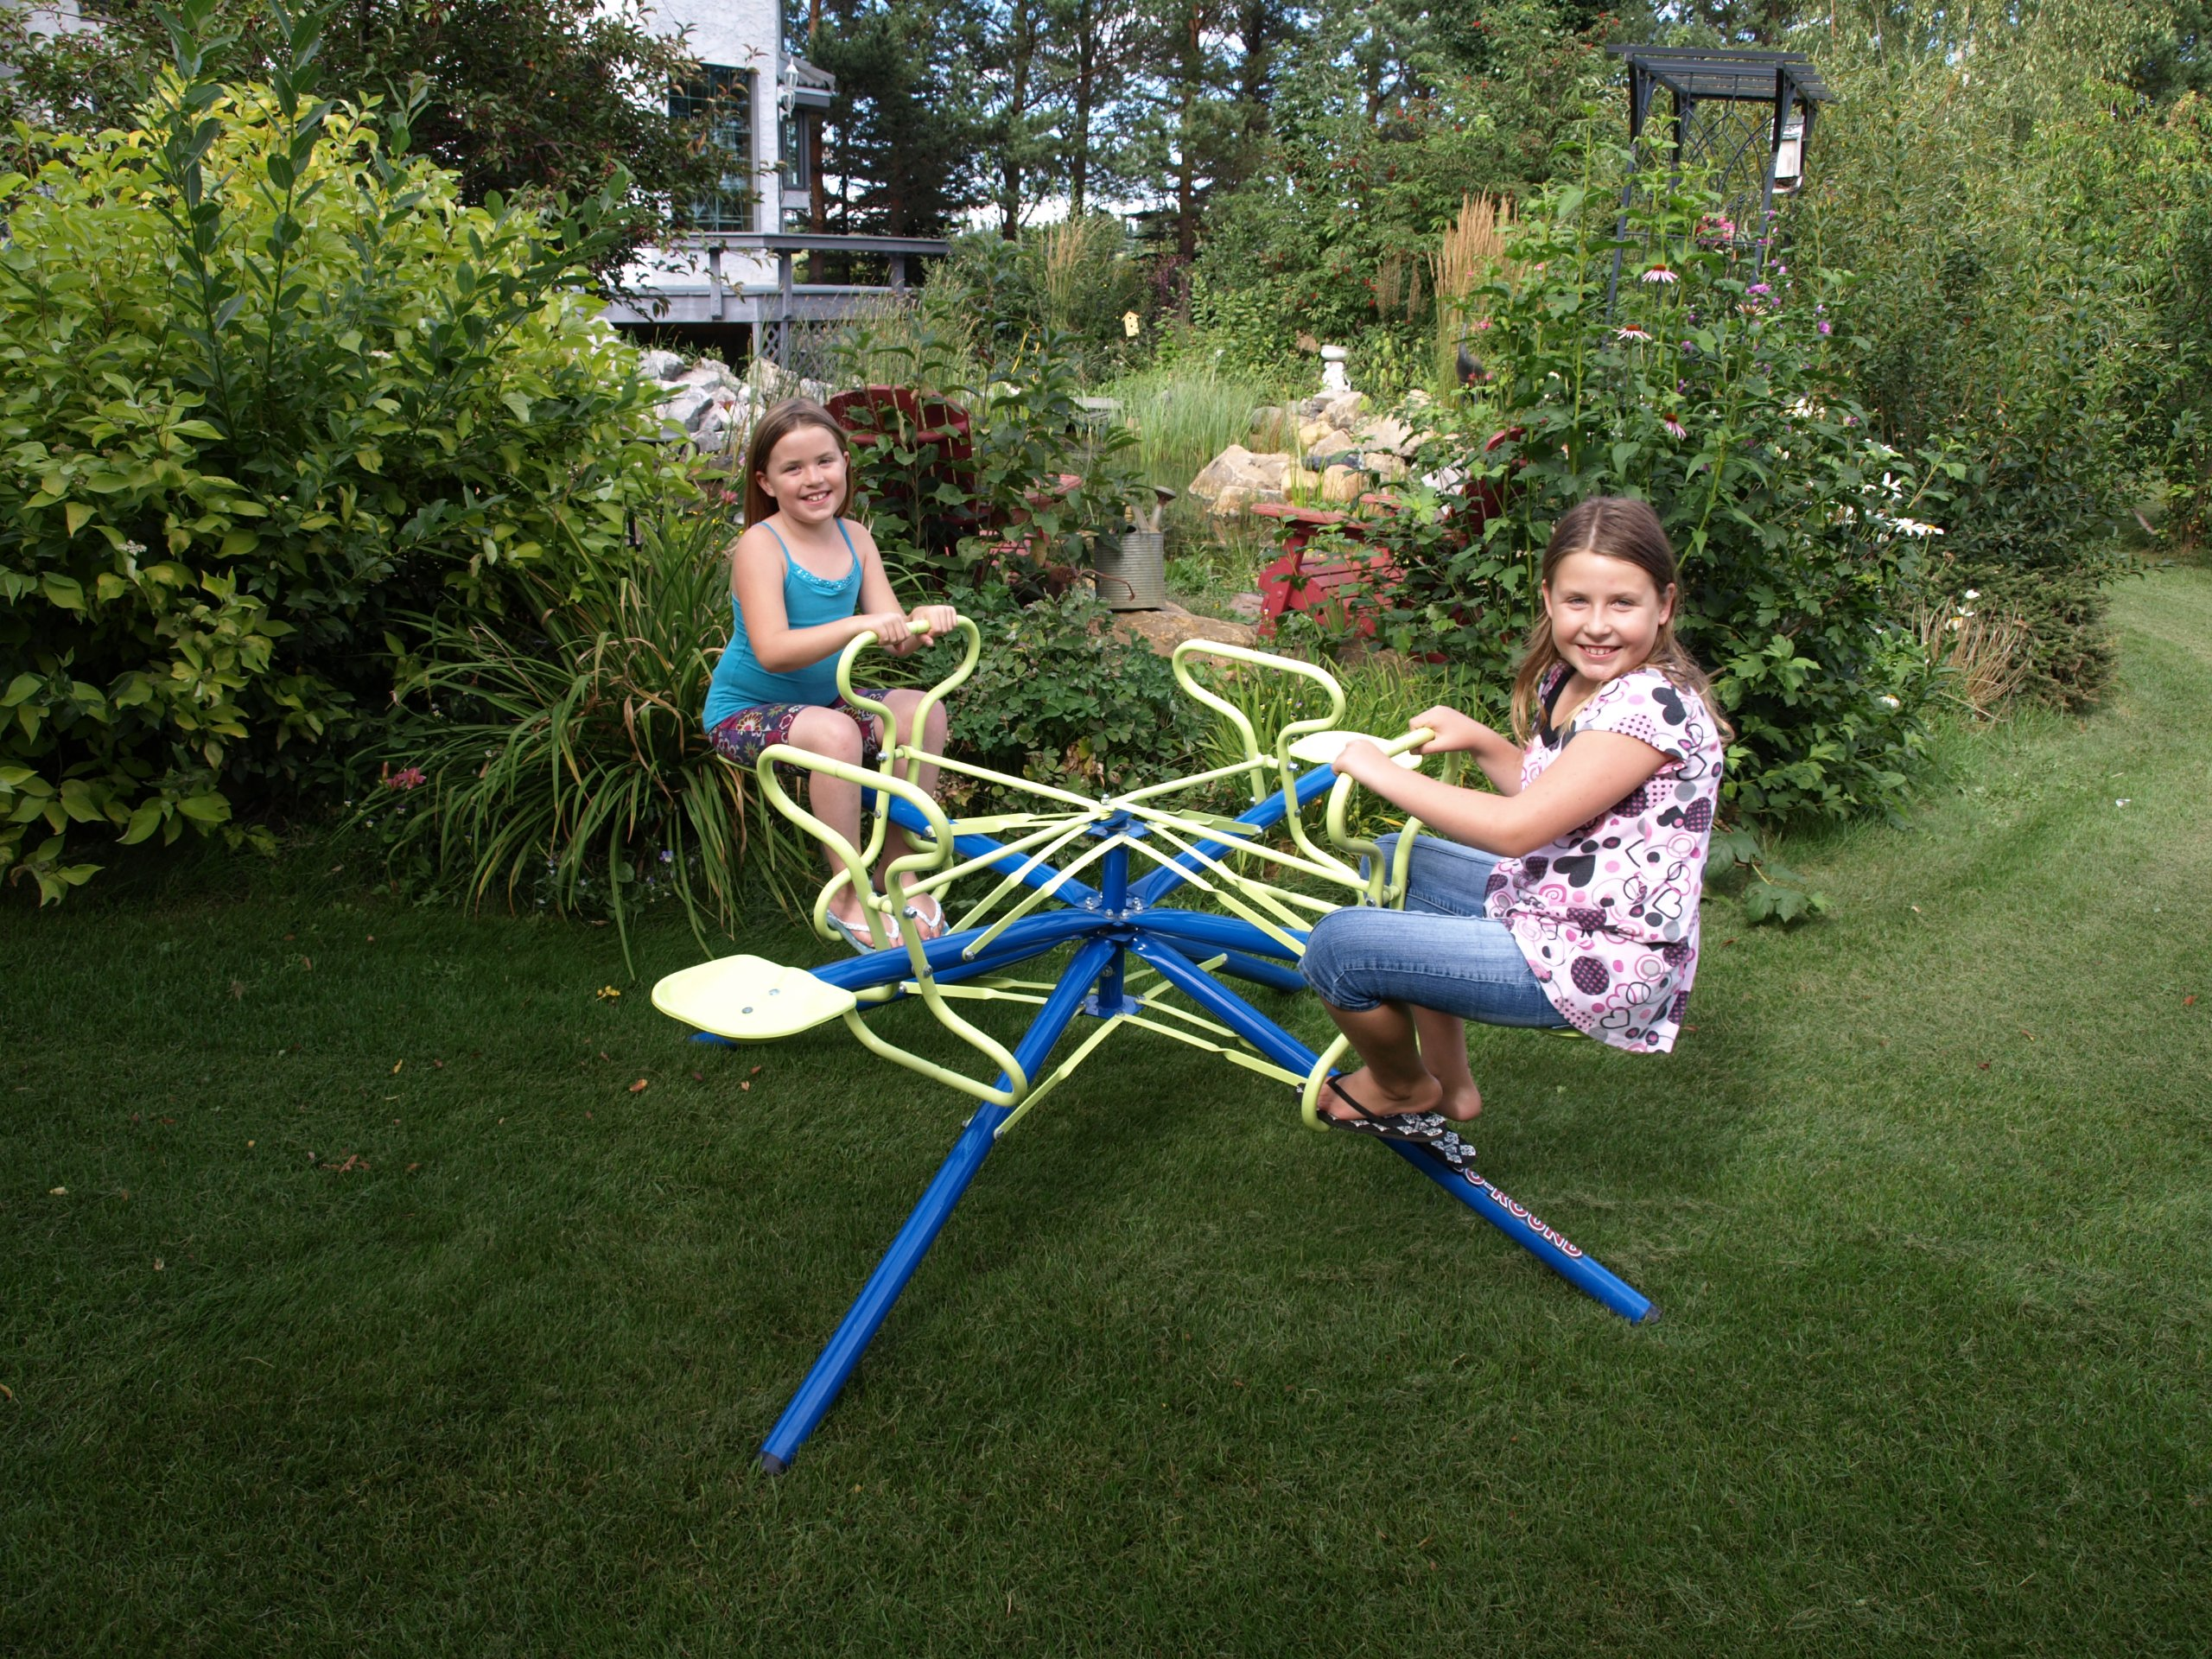 4 Seater Merry-Go-Round and Teeter Totter by Epoch Air